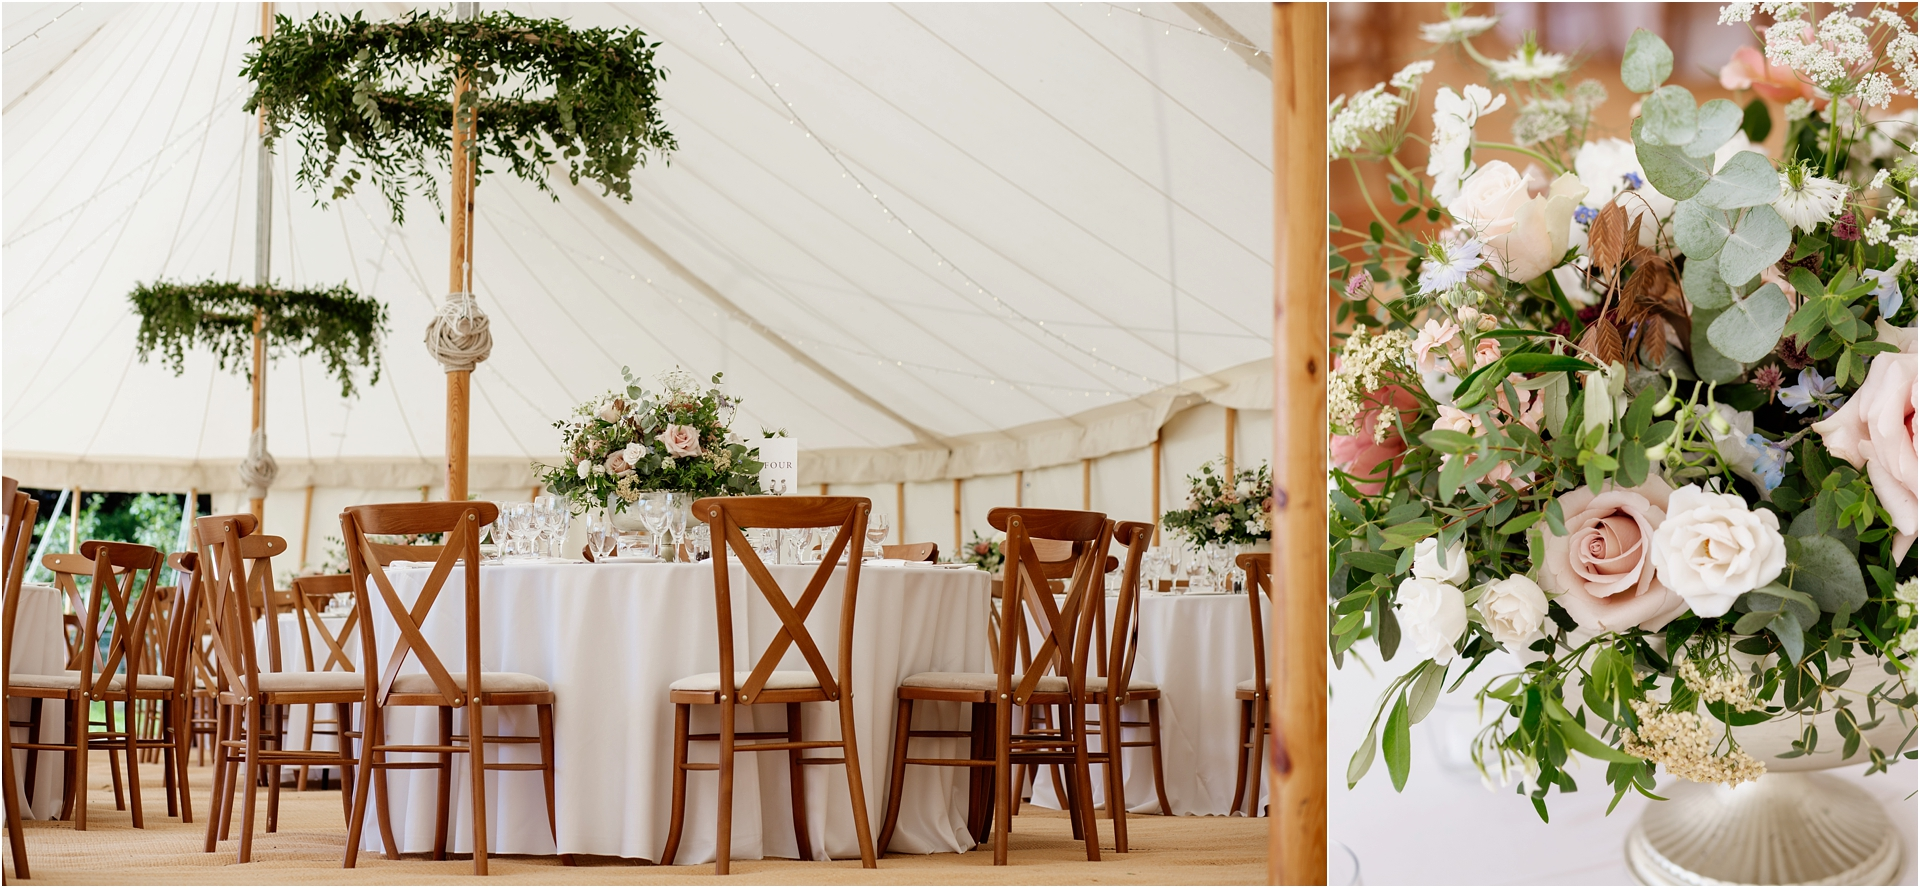 Marquee Home farm wedding photography Derbyshire